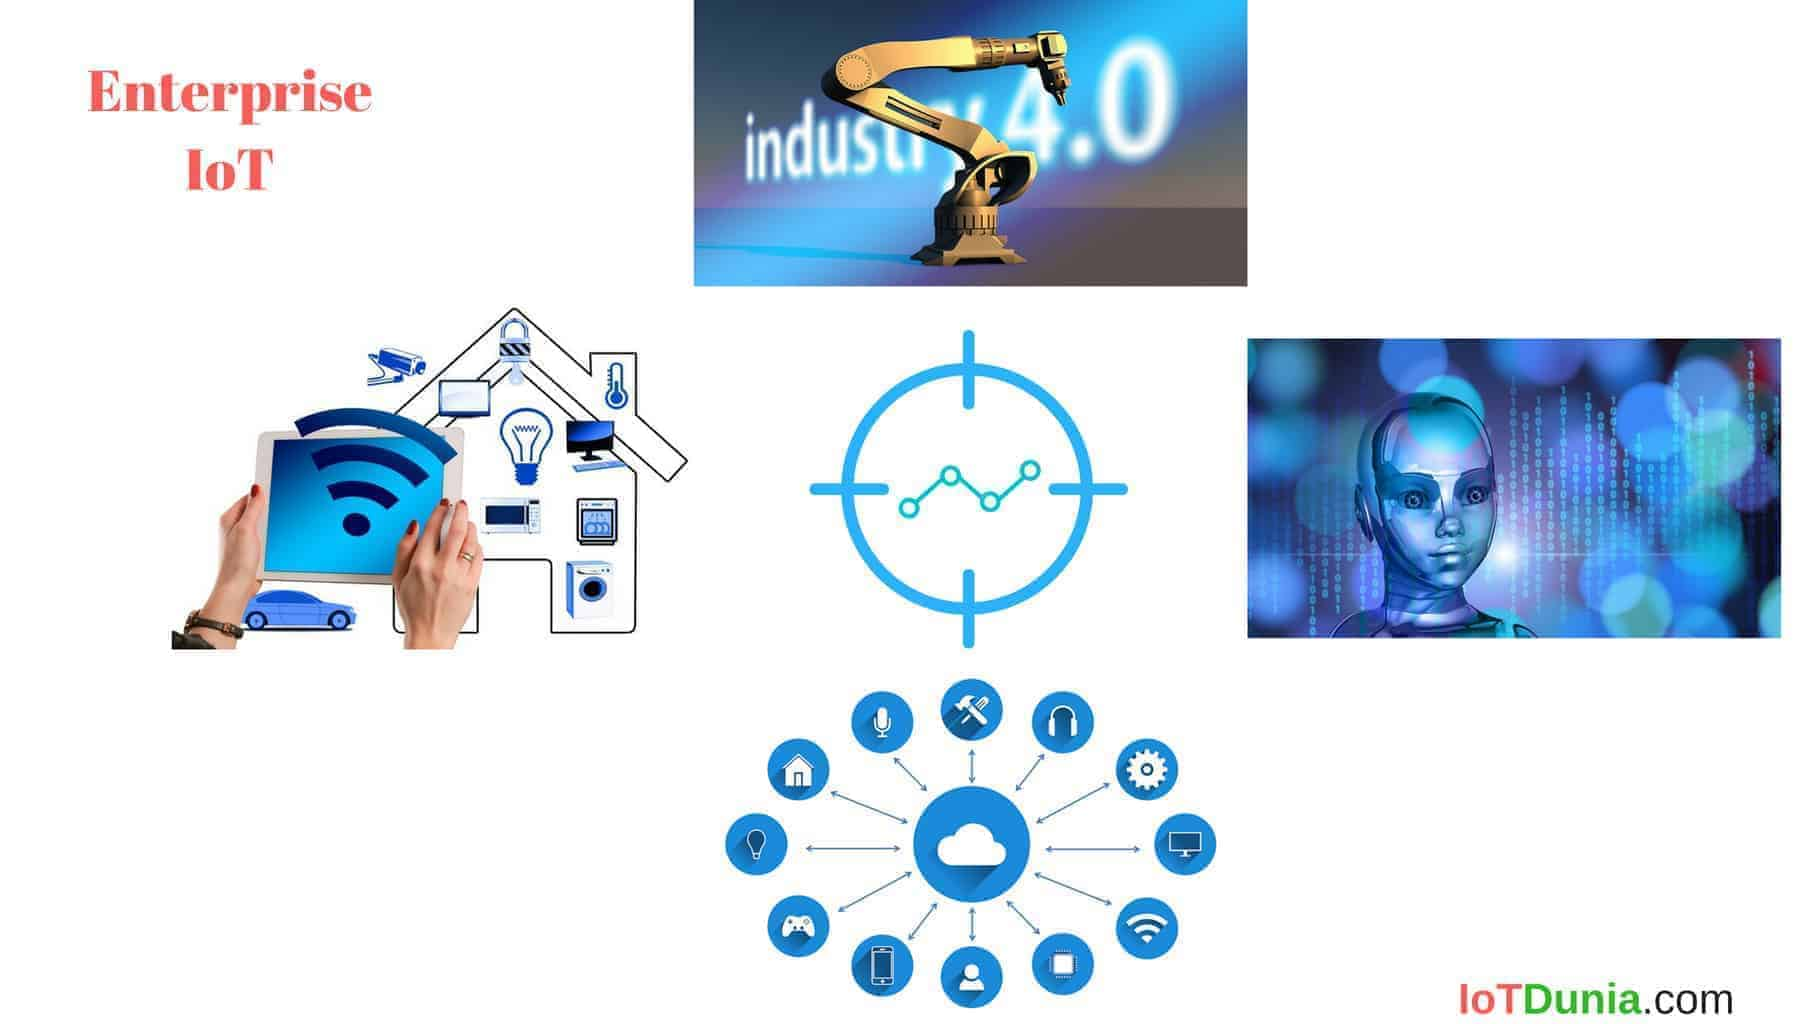 Enterprise IoT (Internet of Things)